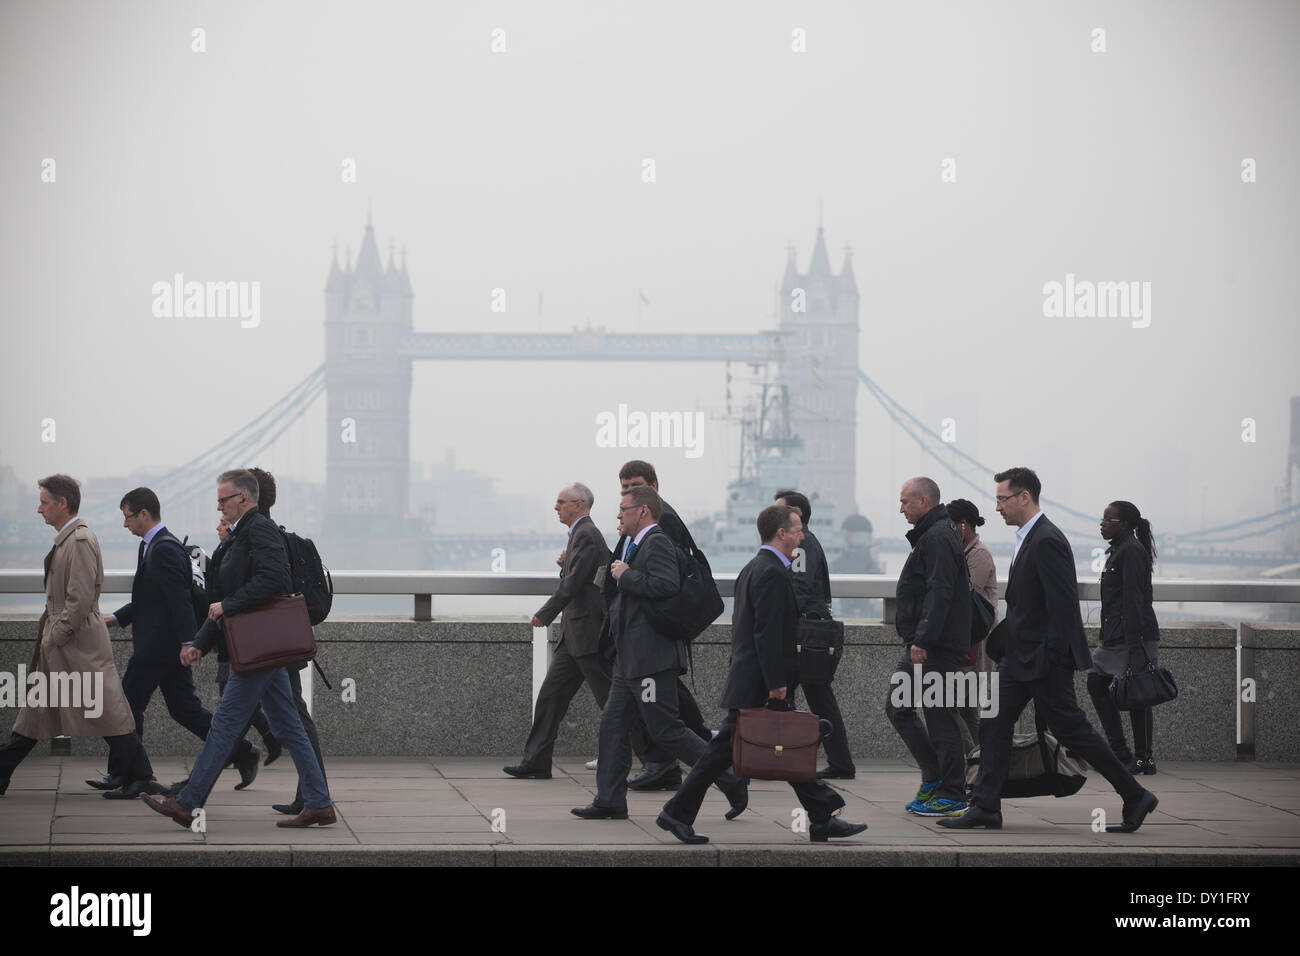 London, UK. 3rd April, 2014. London Smog: London Bridge, City of London, London, UK Commuters make their way across London Bridge as the London Smog, and red dust swept up from the Sahara continue to cause high levels of air pollution across the capital. Scores of flights have been cancelled and people have been advised to stay indoors if they suffer from asthma or heart conditions. Credit:  Jeff Gilbert/Alamy Live News - Stock Image